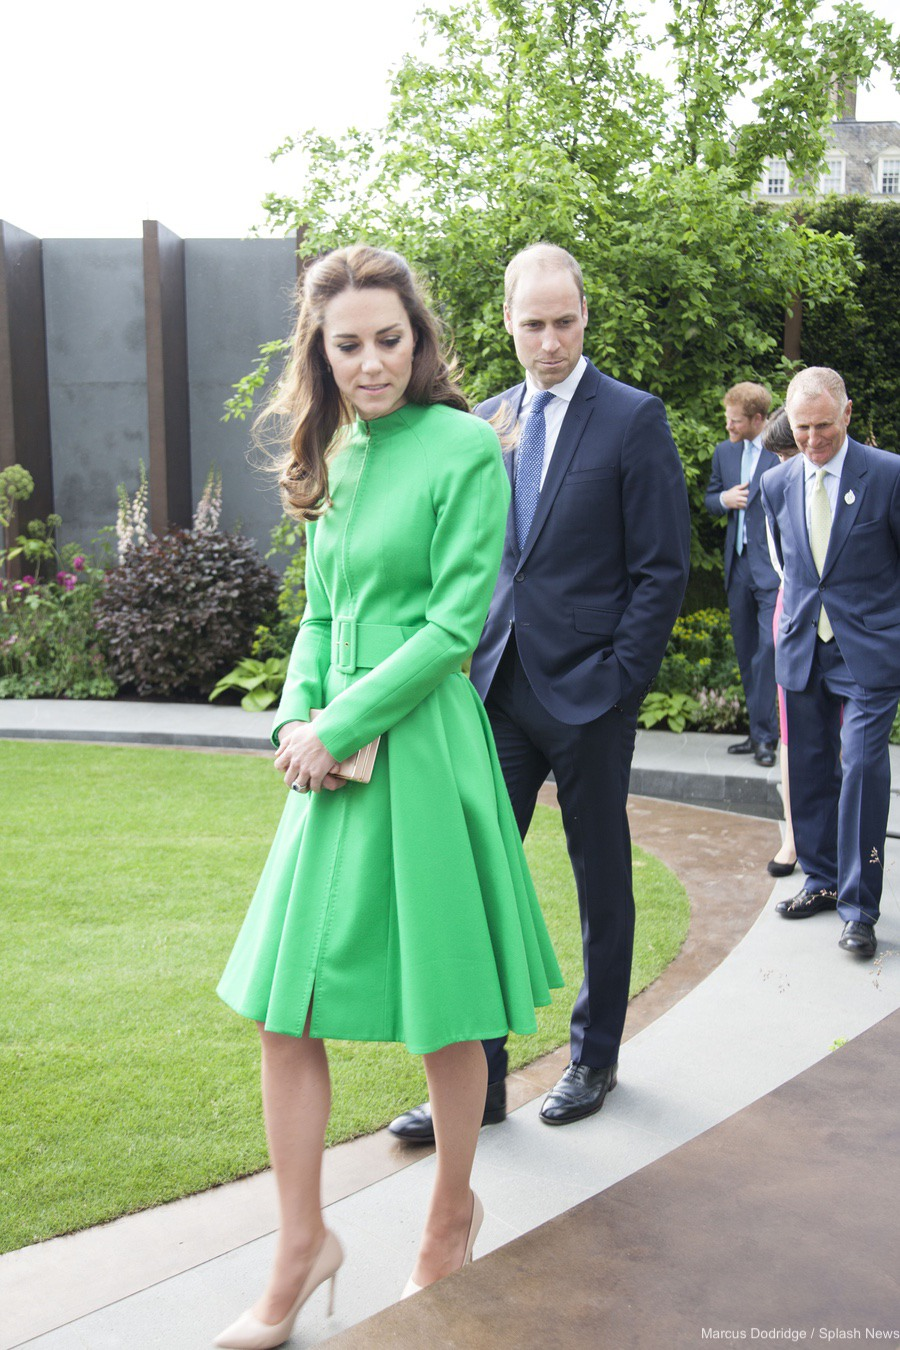 Kate Middleton's outfit at the Chelsea Flower Show in 2016